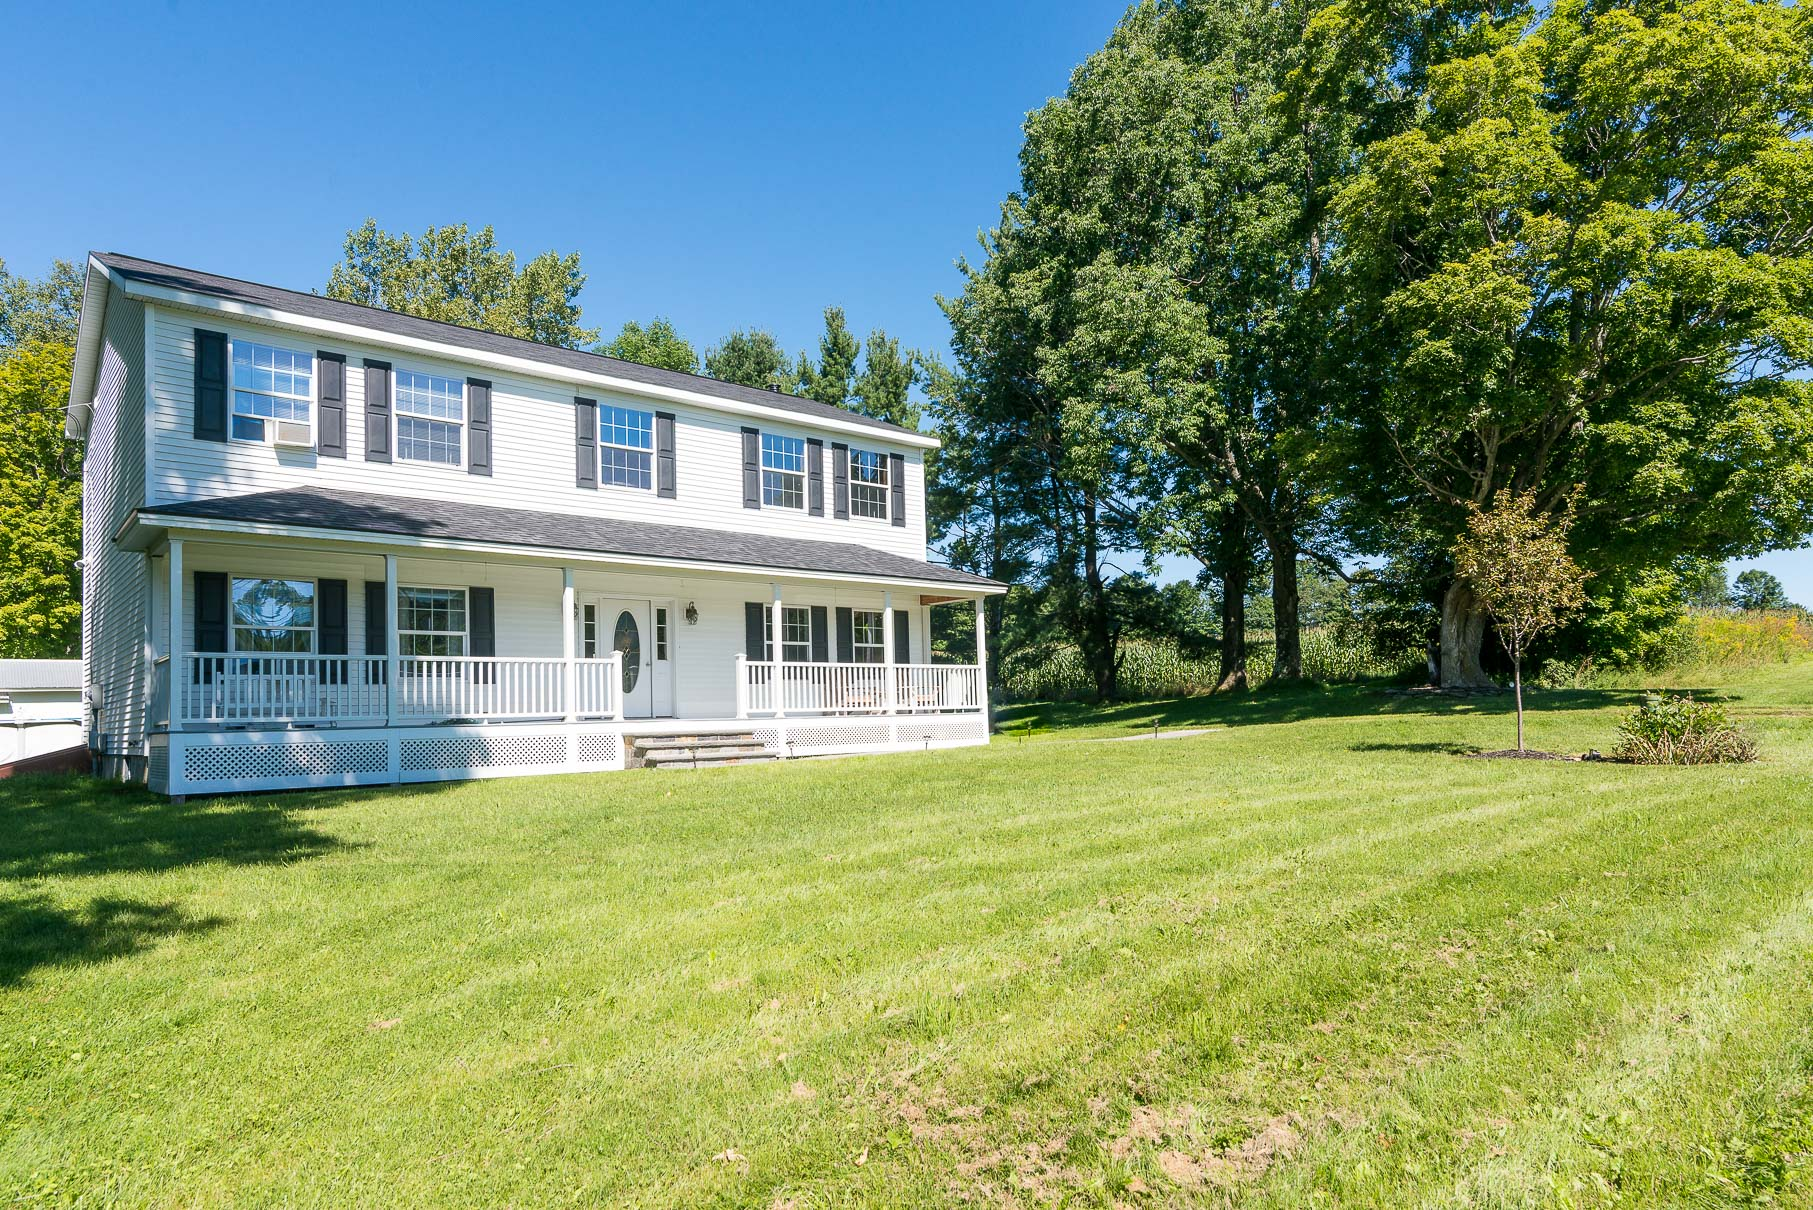 Single Family Home for Sale at Newer Colonial in Quintessential Country Location 3869 Brook Rd Danby, 05739 United States